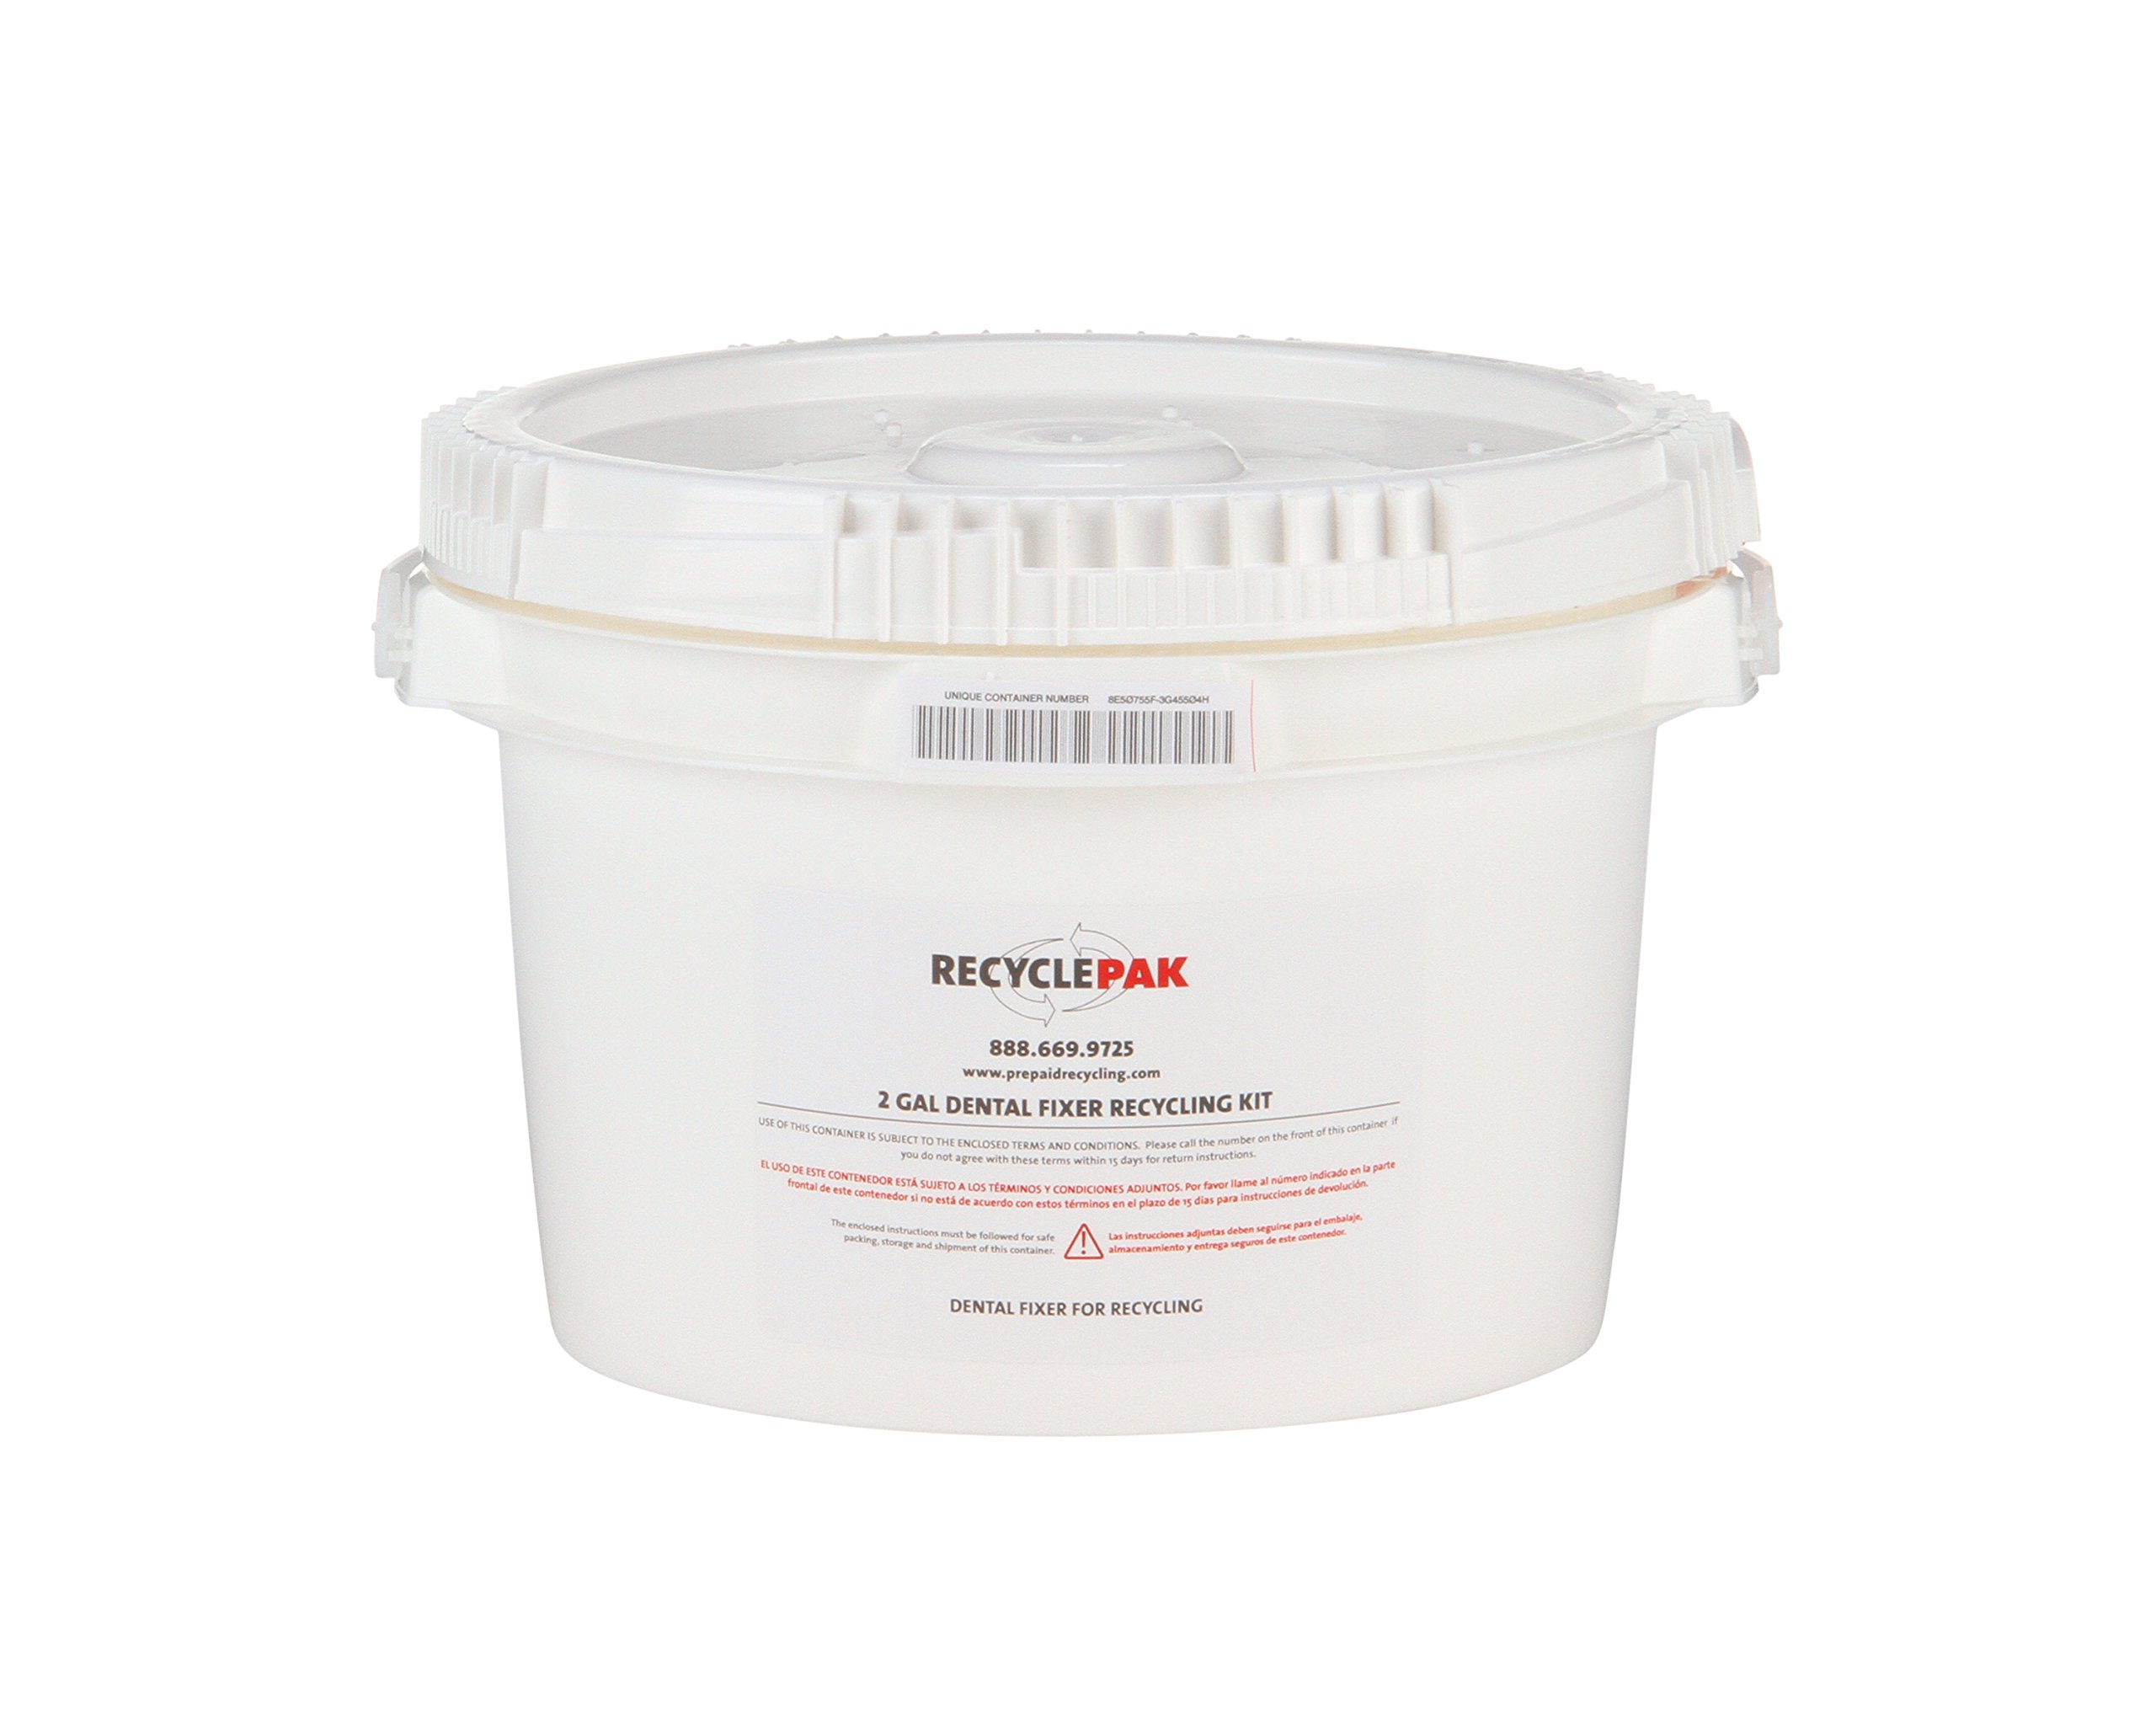 SUPPLY-063 2 GAL DENTAL FIXER RECYCLING PAIL